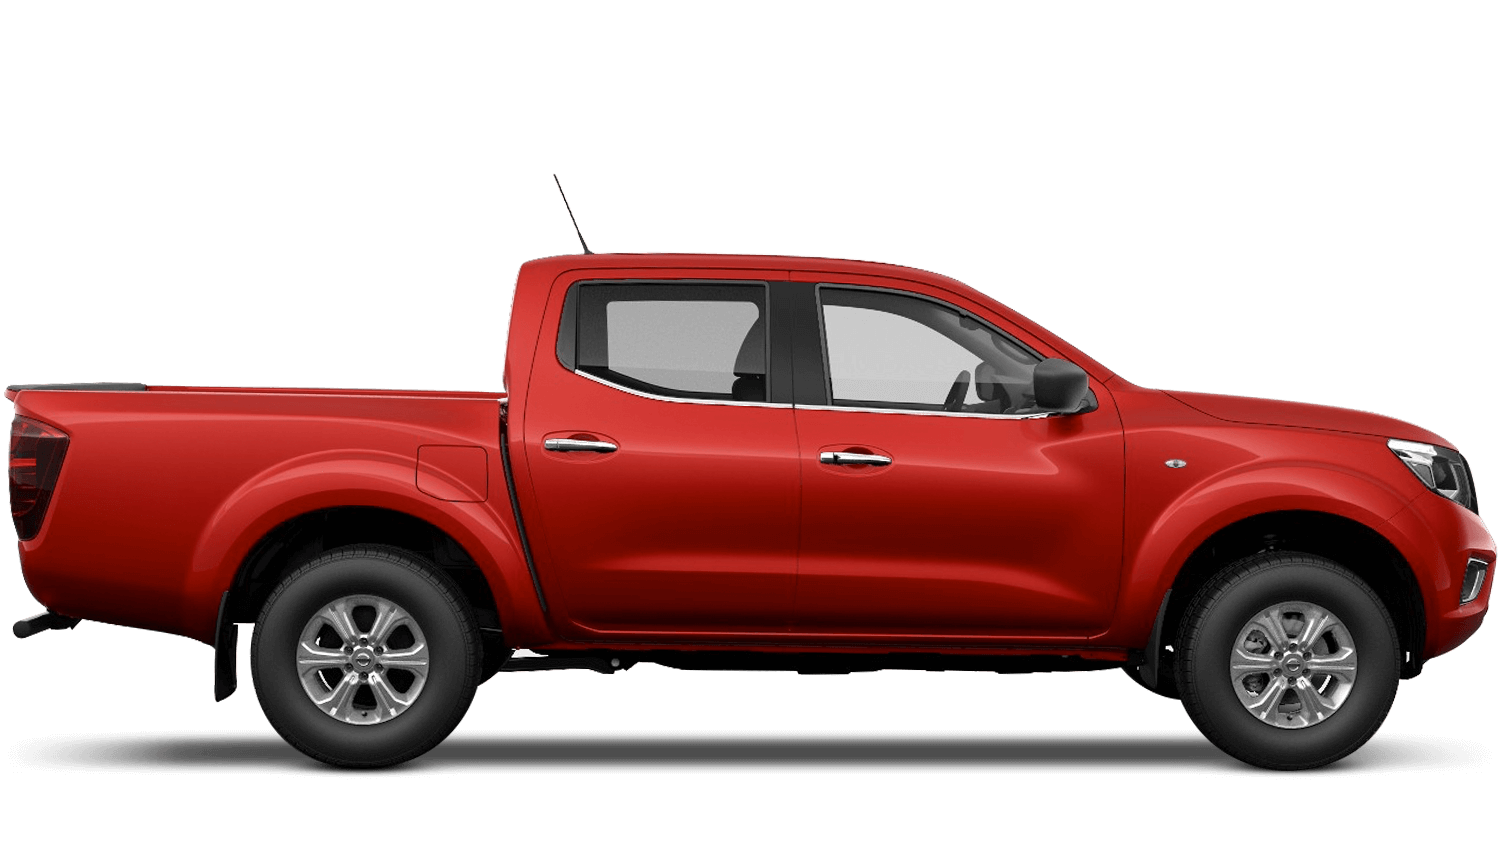 Flame Red Nissan Navara